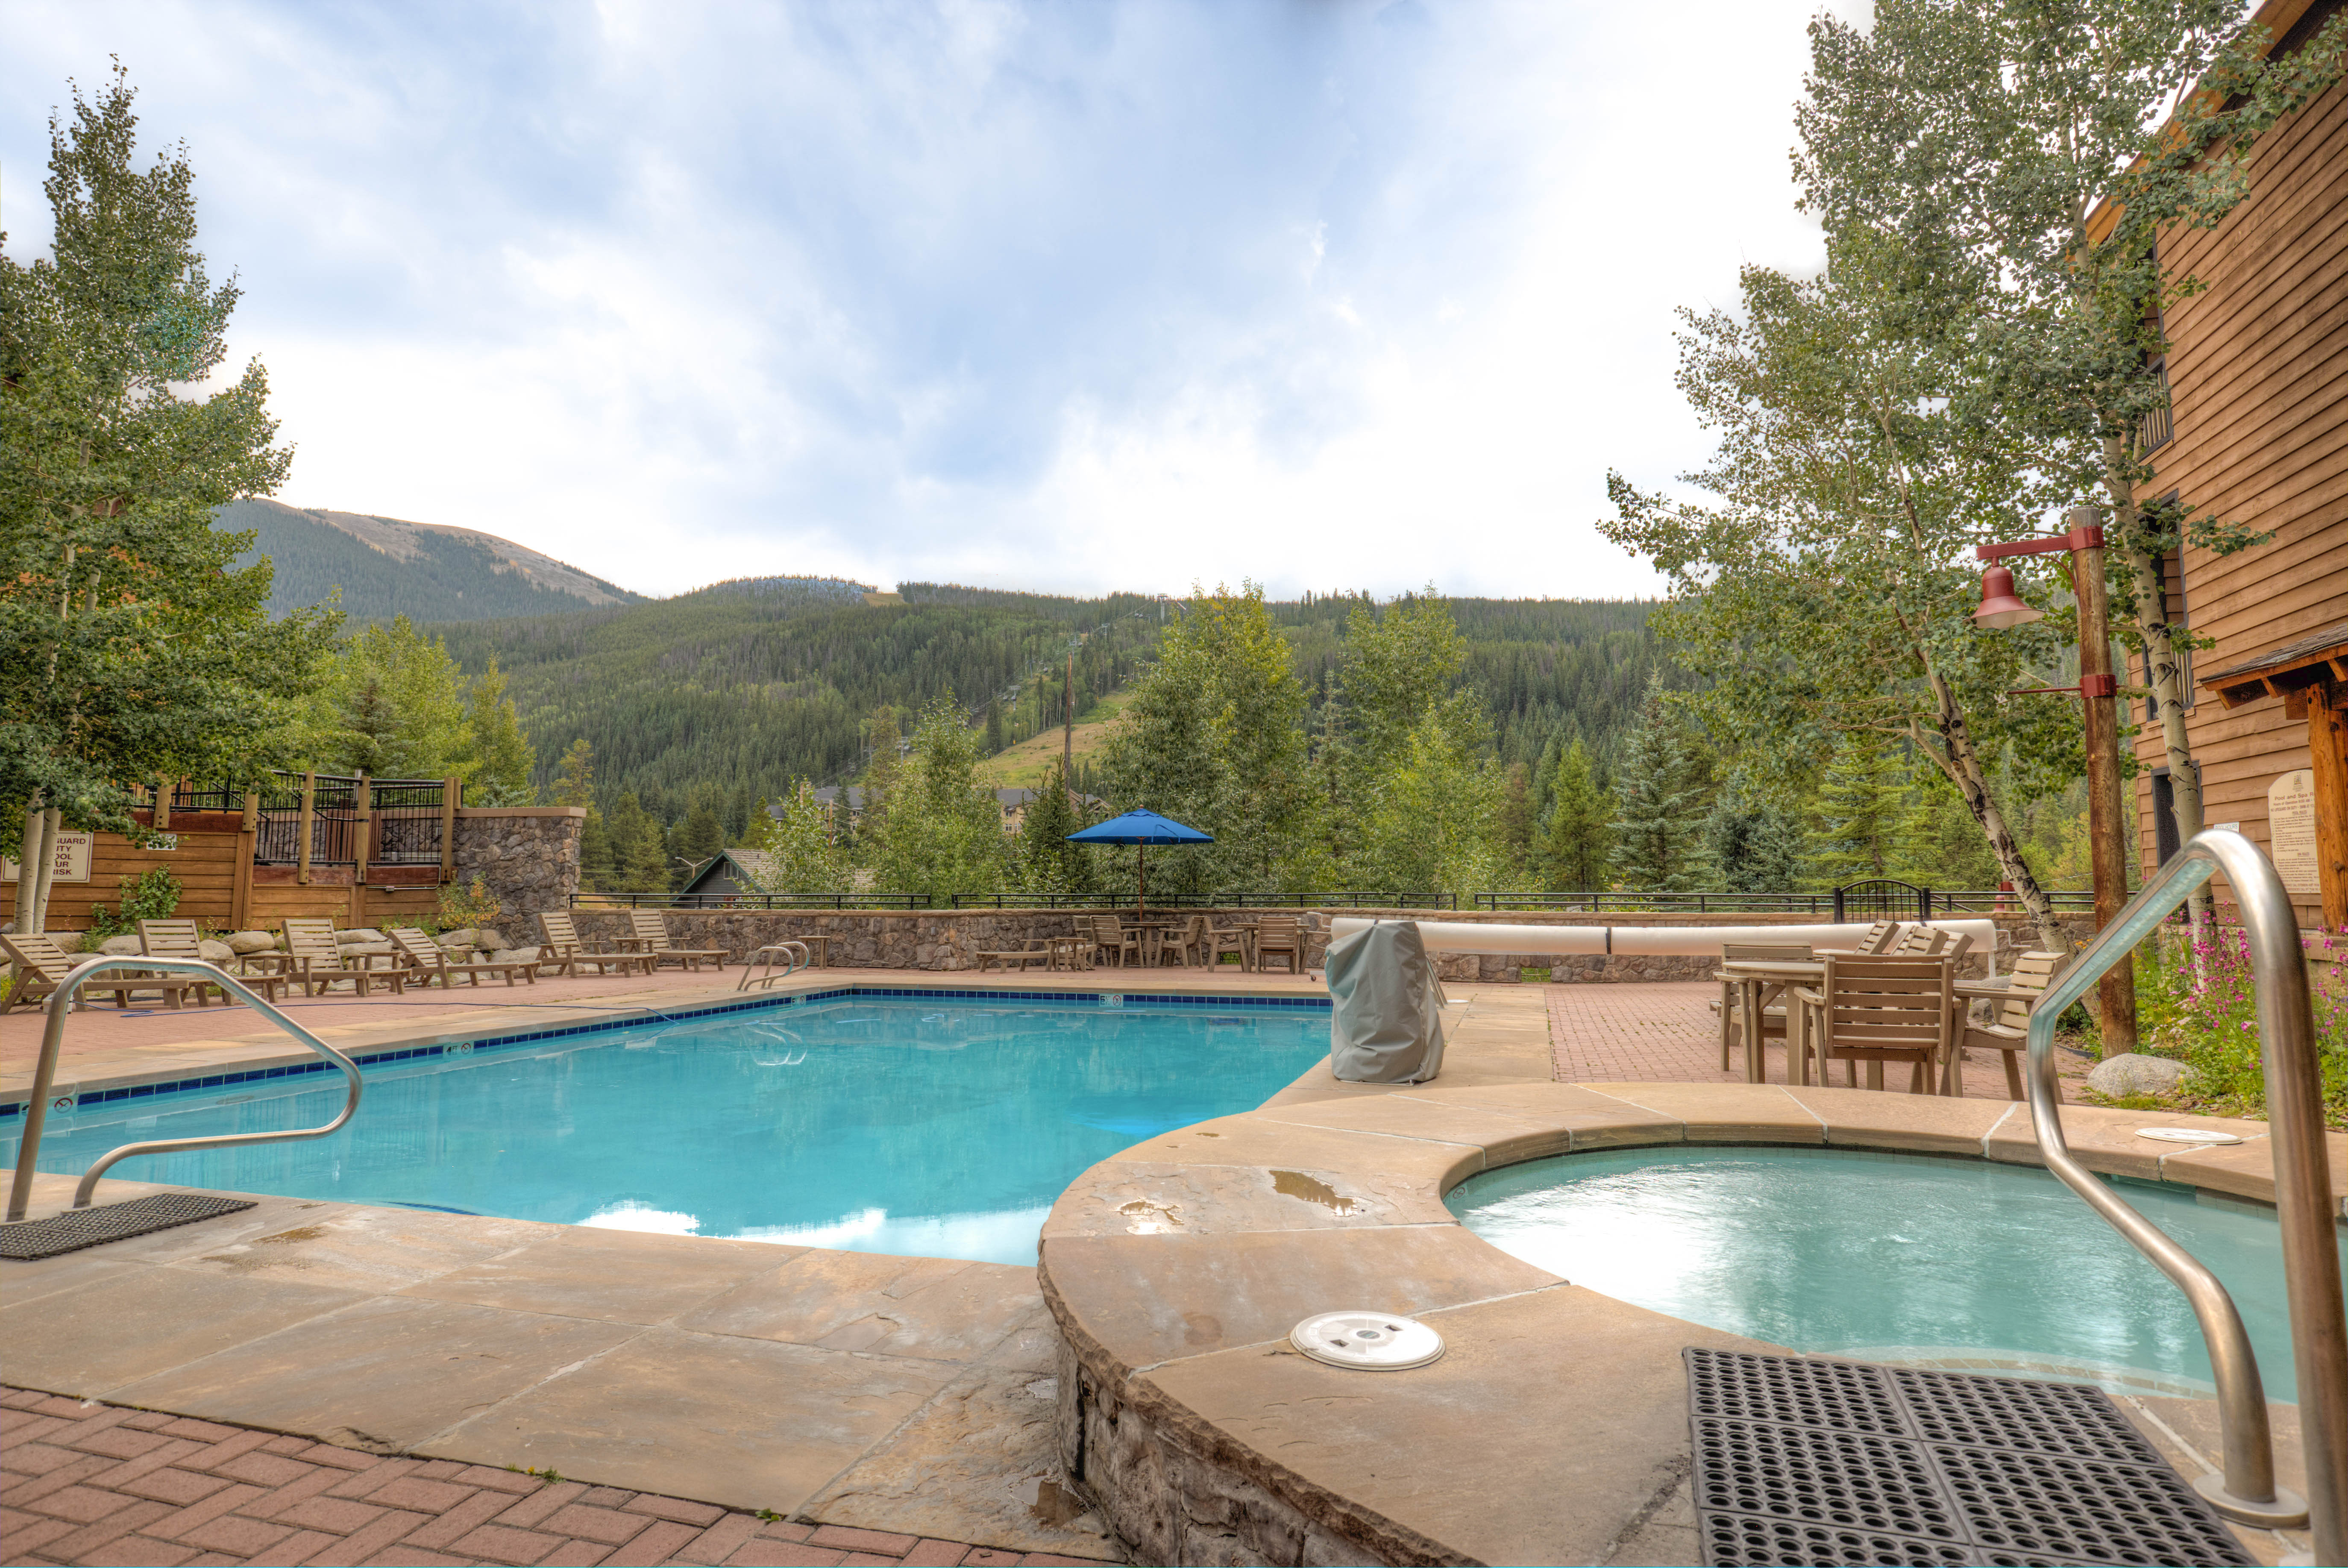 Guests of River Run Townhomes have access to the shared pool and hot tubs at Dakota Lodge.